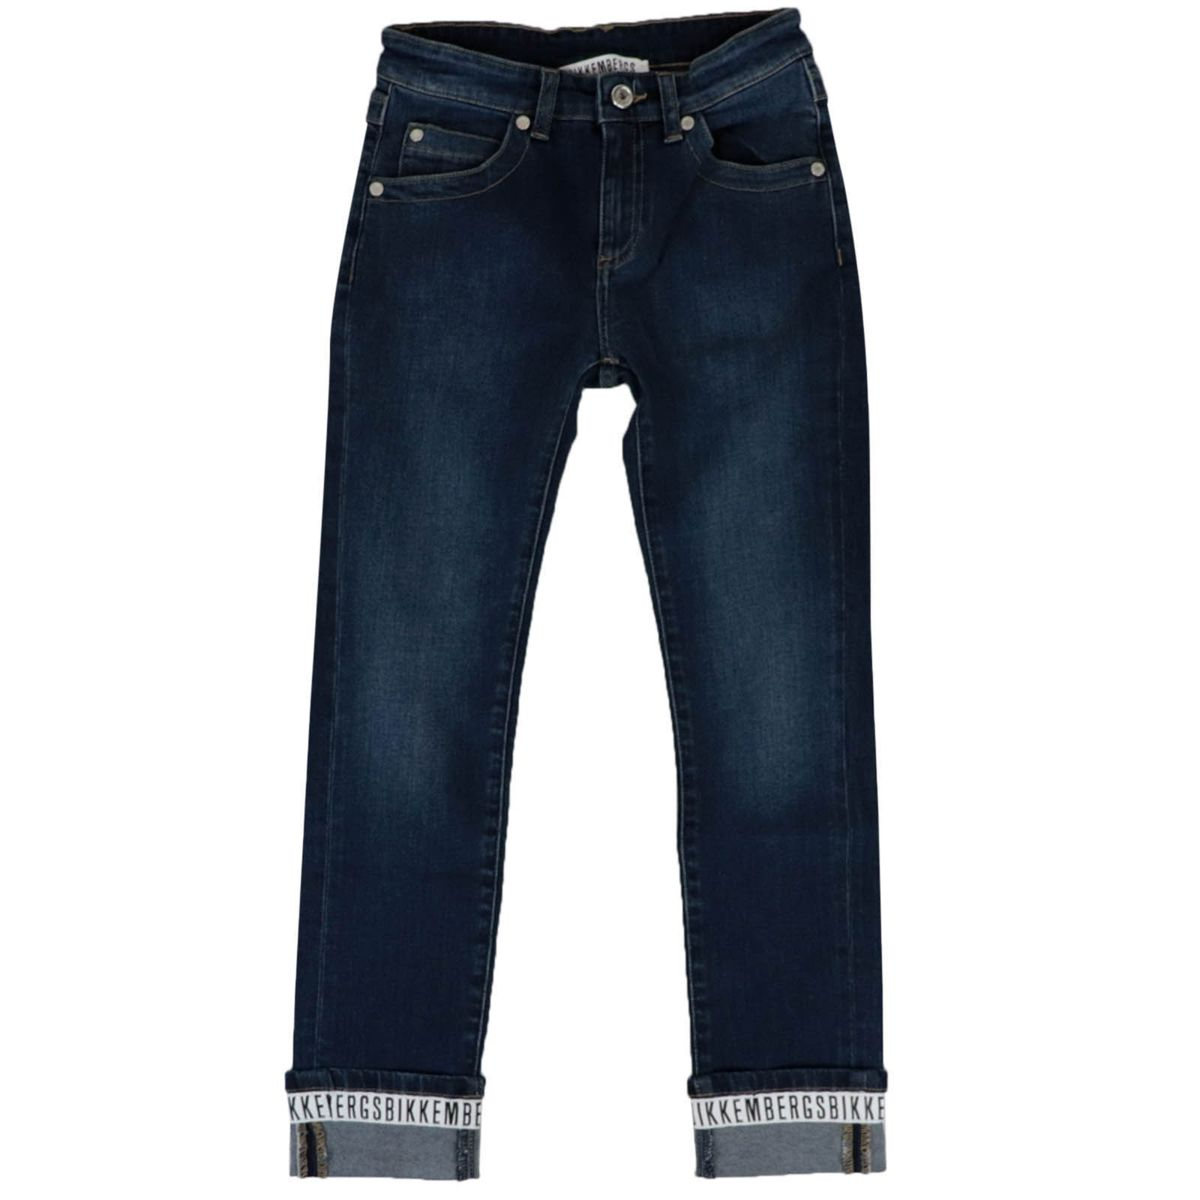 Stretch denim jeans with logoed band on the bottom Denim Bikkembergs